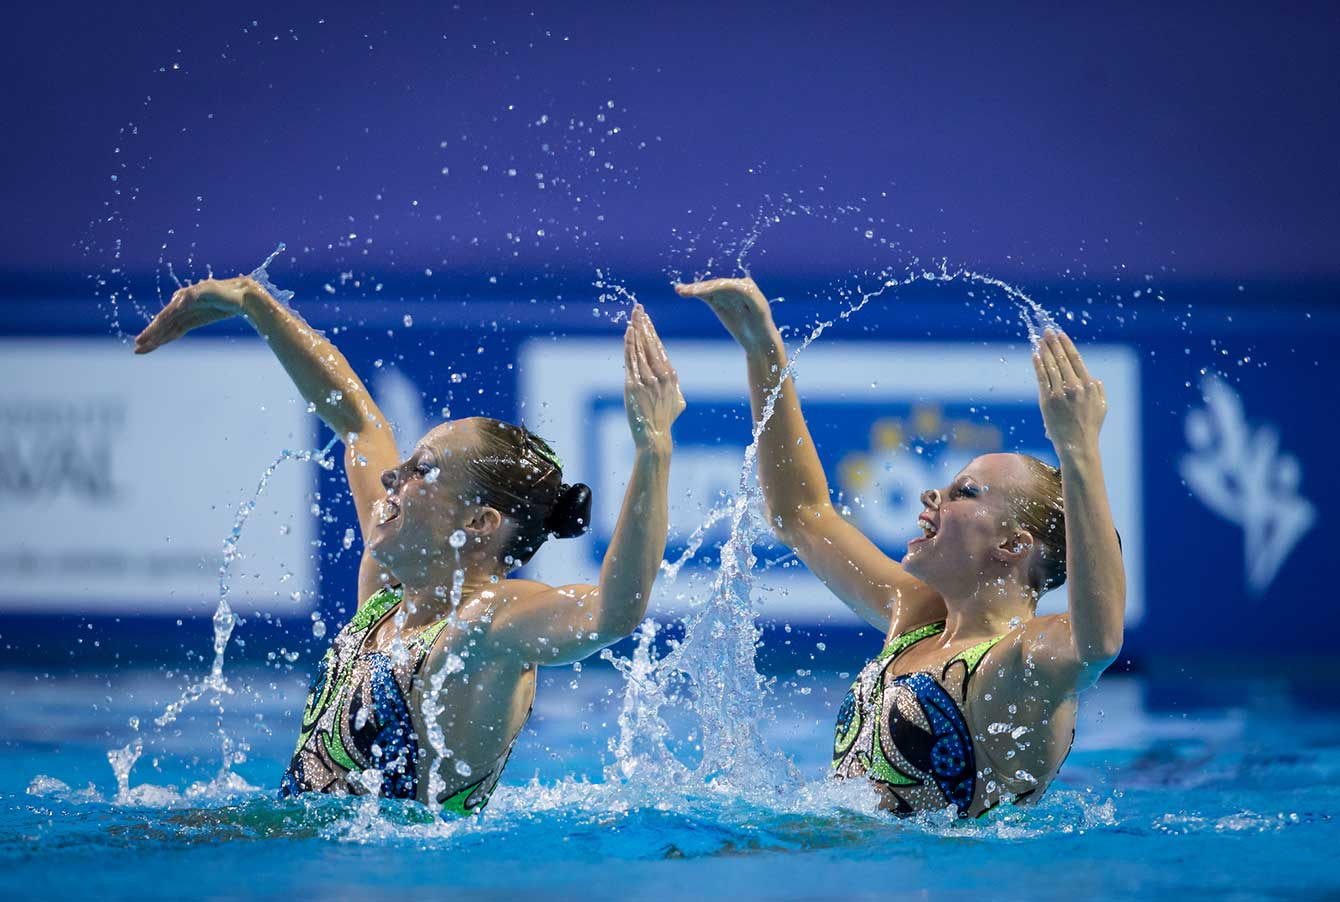 Karine Thomas (left) and Jacqueline Simoneau seen at the 2015 Synchronized Swimming World Cup.   Photo: Synchro Canada